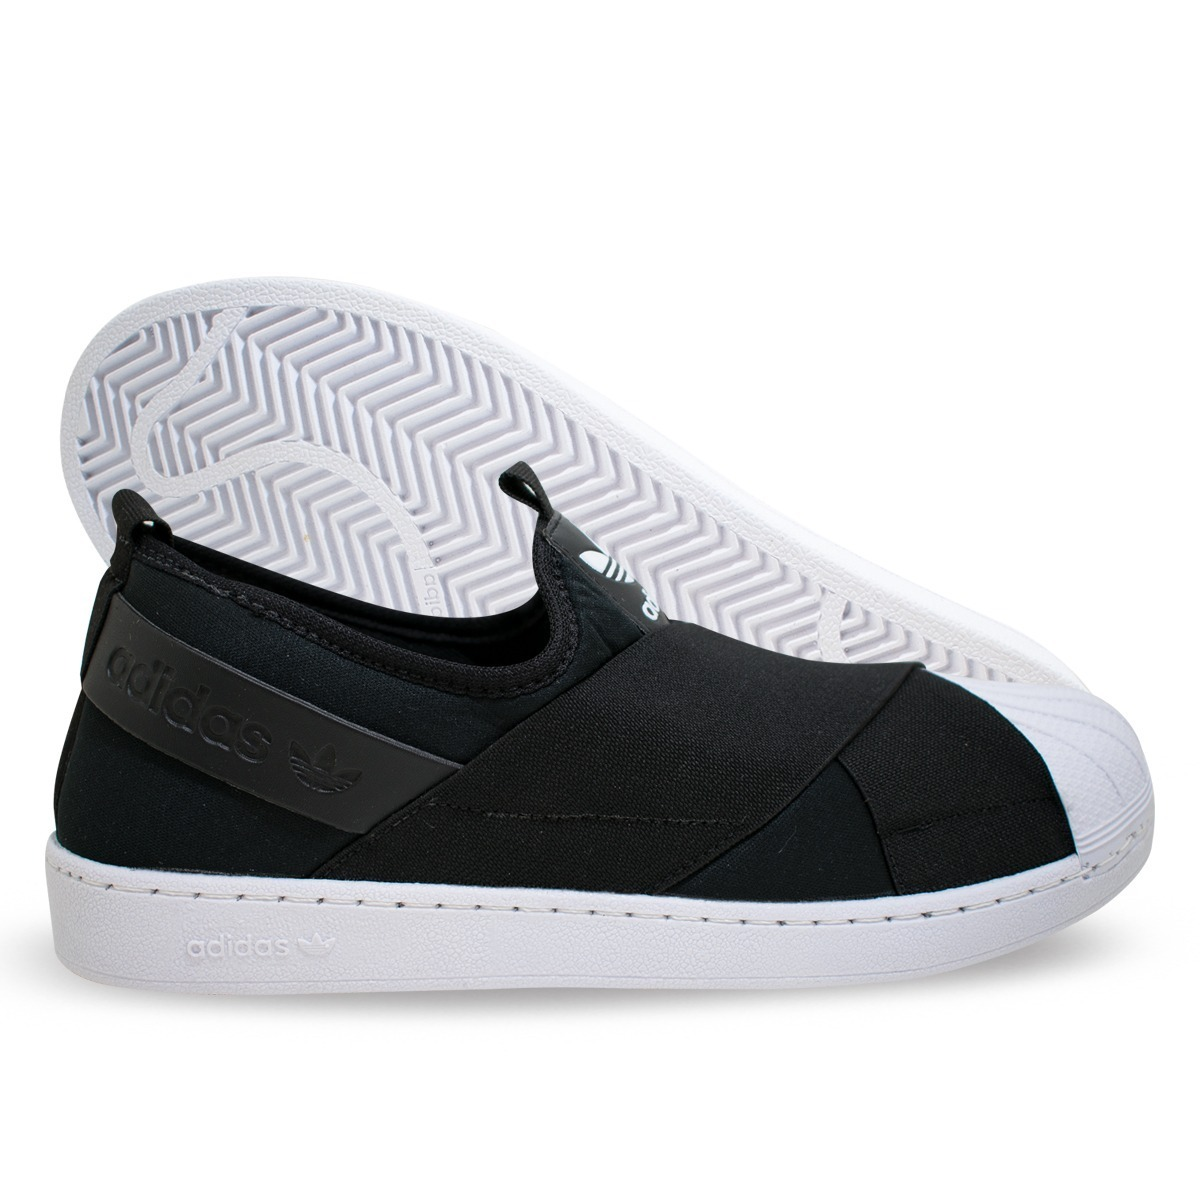 f5aceeae3e6 Tenis adidas Slip On Superstar Unissex Original Preto - R  200